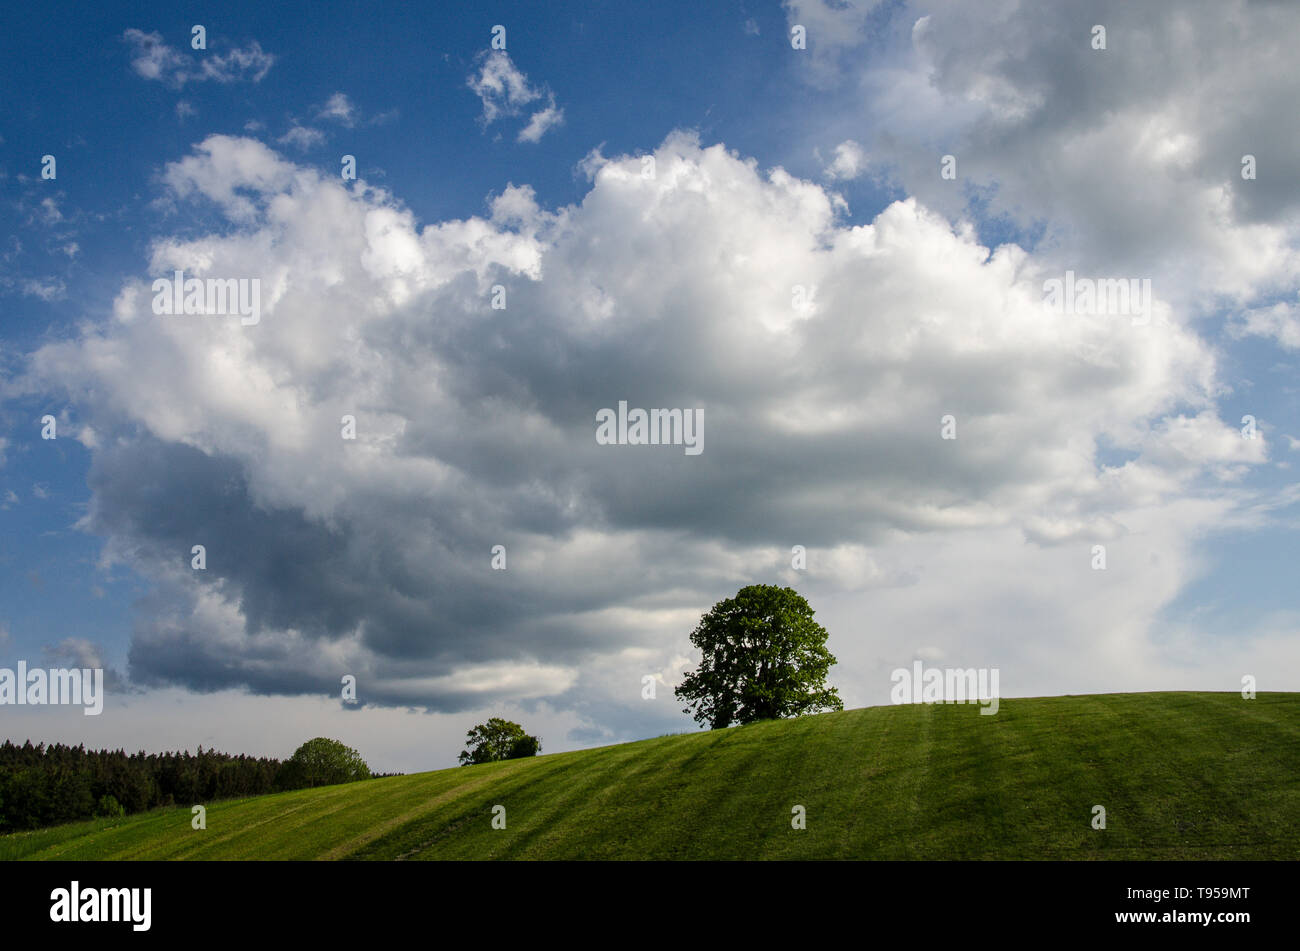 weather in the alpine upland - Stock Image